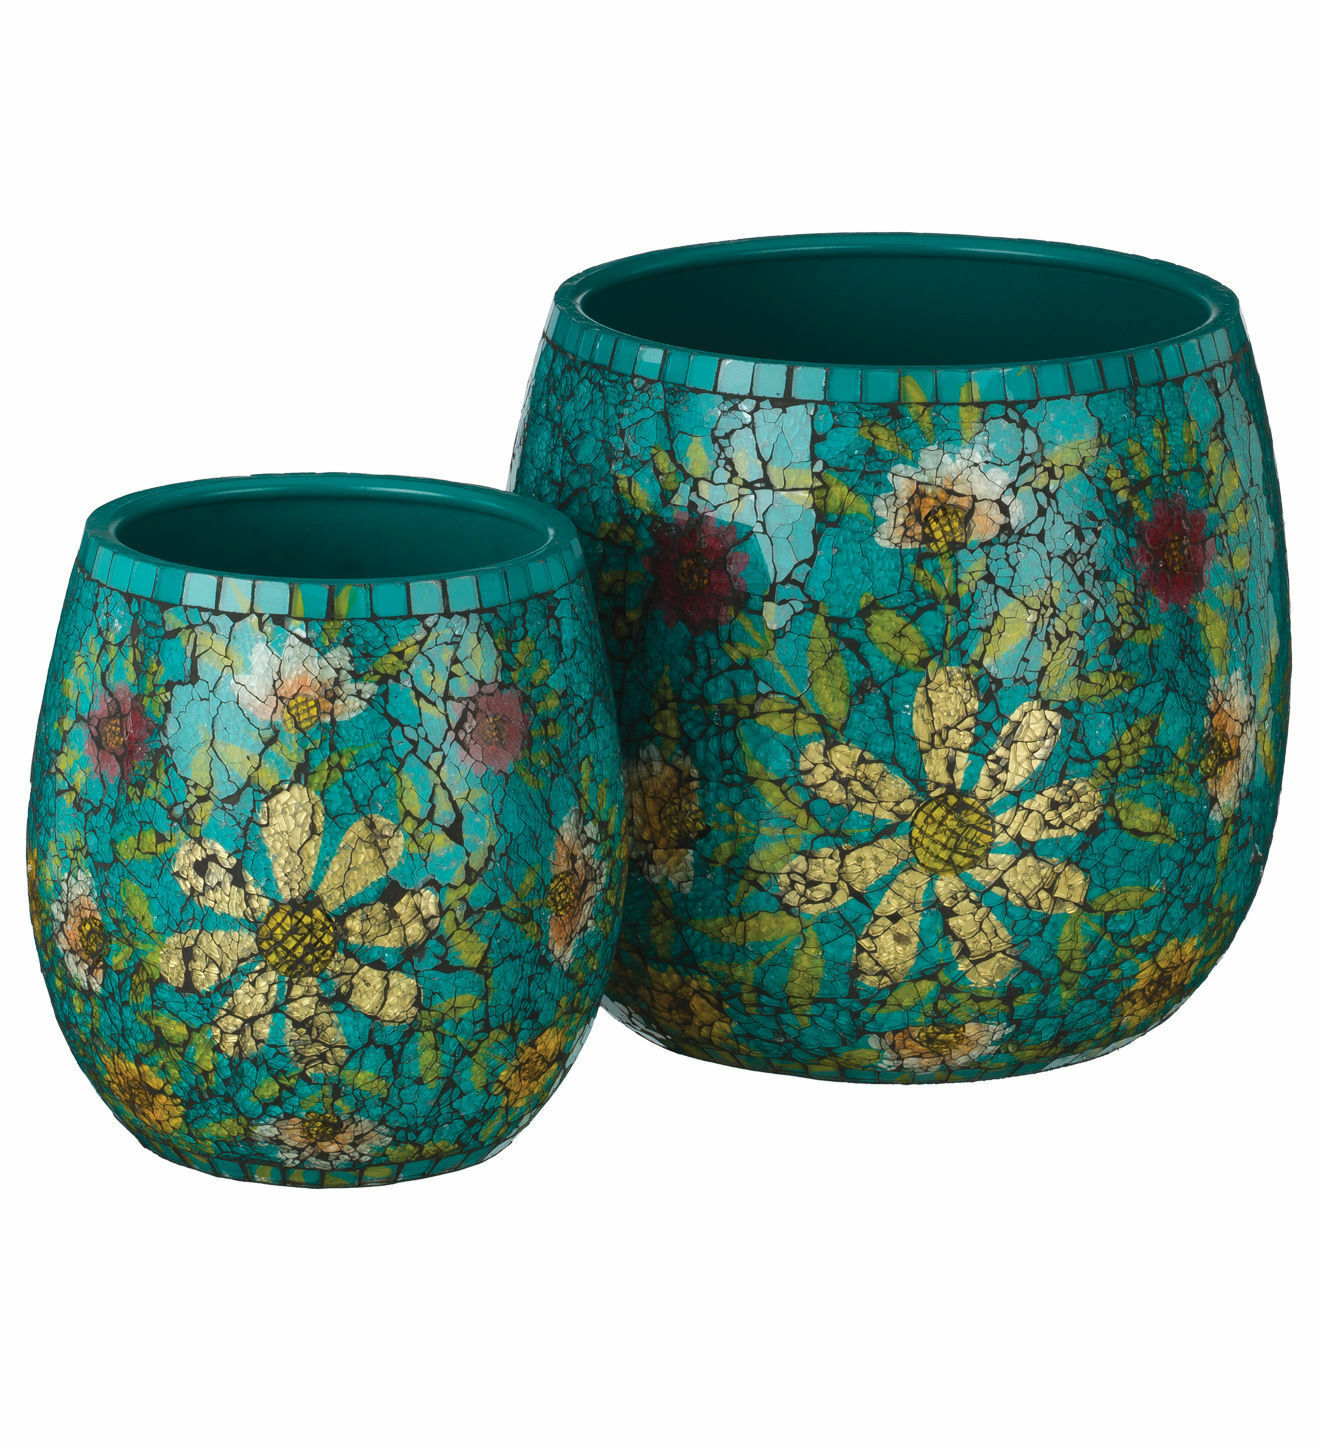 SET/2 TEAL OR WHITE MOSAIC GLASS GARDEN/POOL PATIO FLOWERS POTS PLANTERS